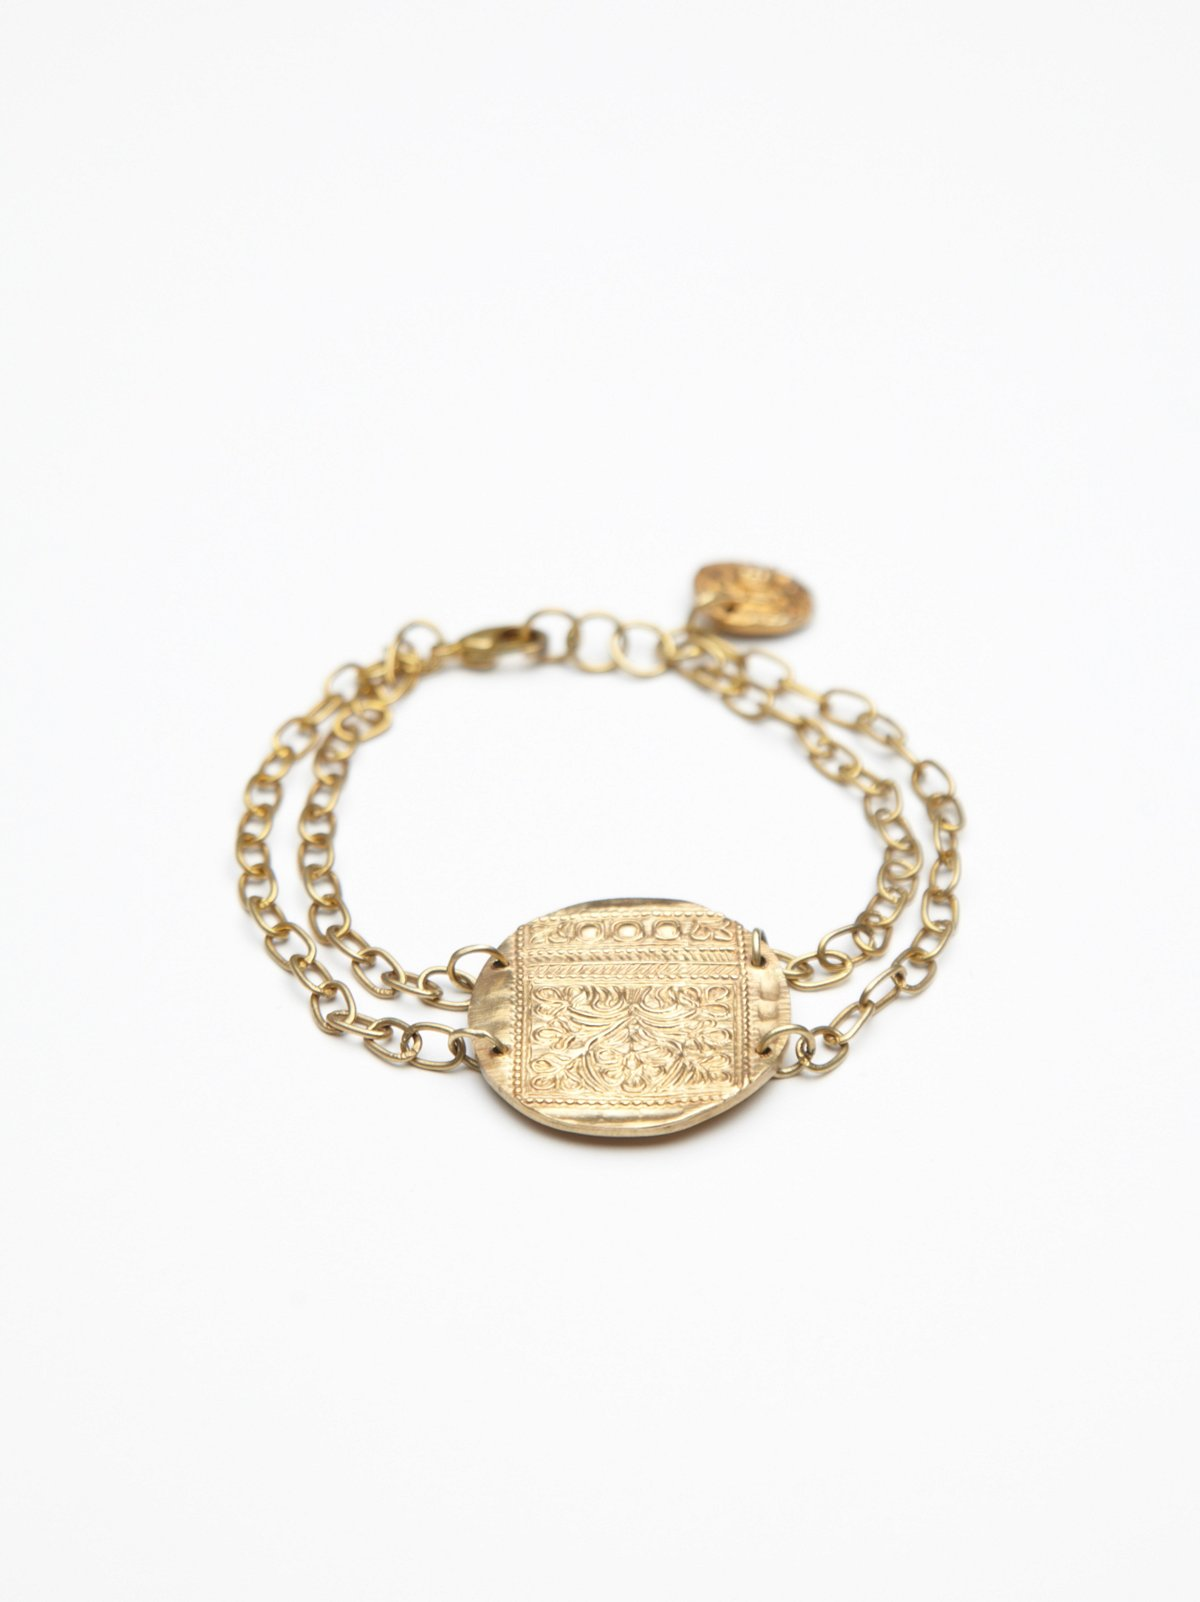 Brass Coin and Chain Bracelet